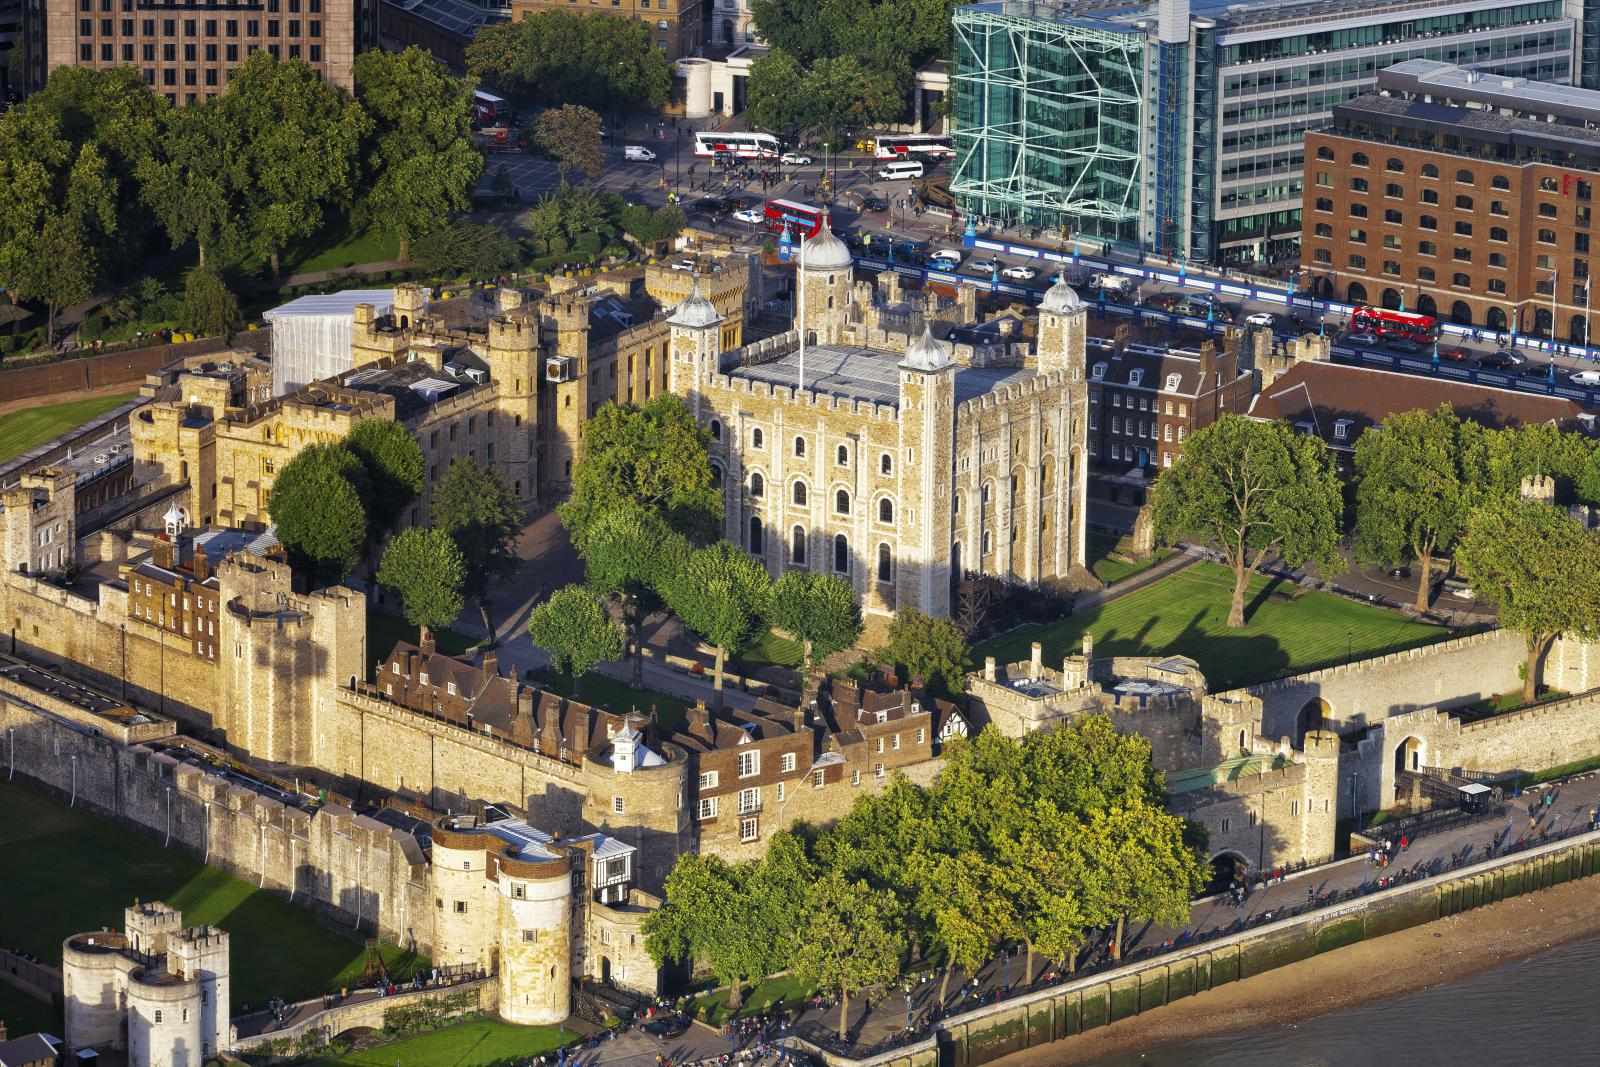 City of London – Tower of London